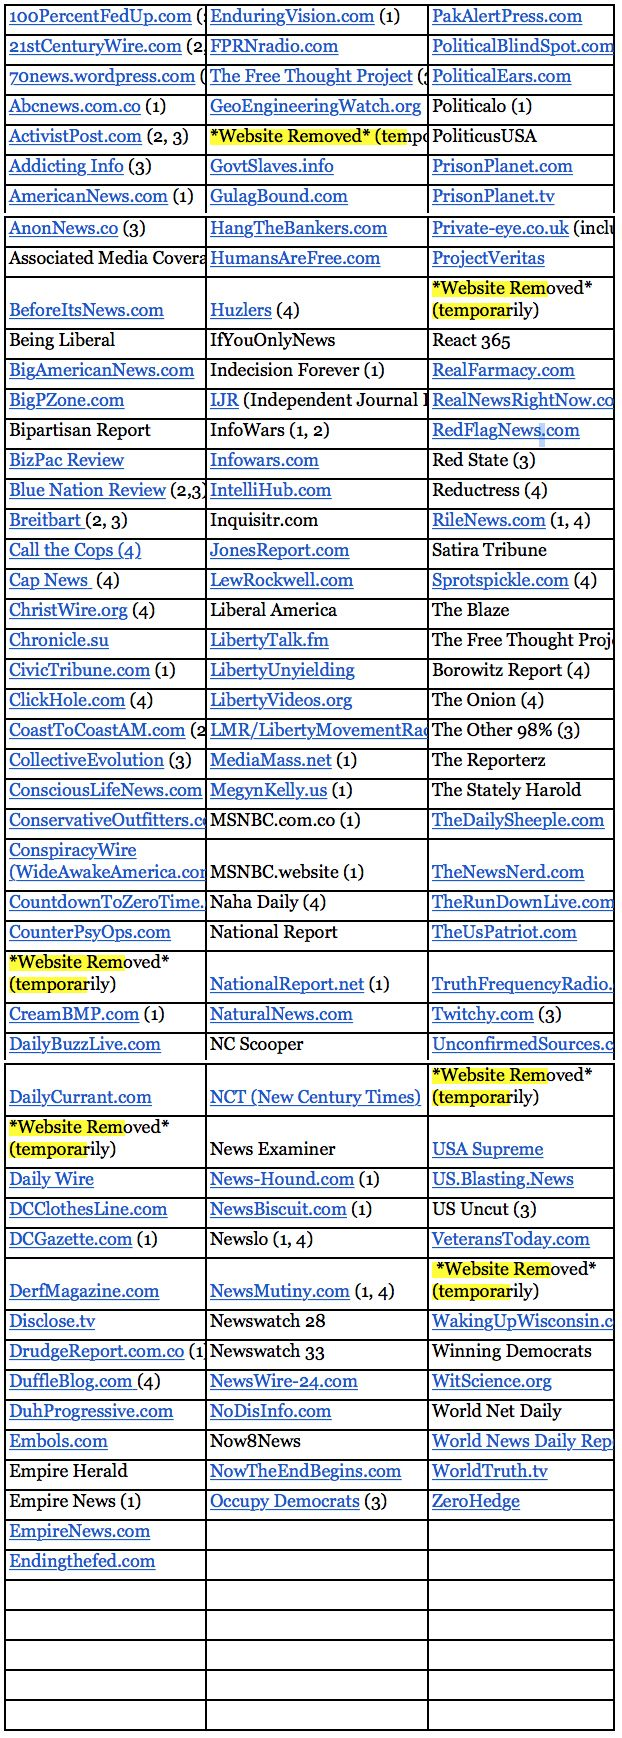 http://www.hannity.com/articles/hanpr-election-493995/fake-'Fake News' List Includes Mainstream Conservative Sources